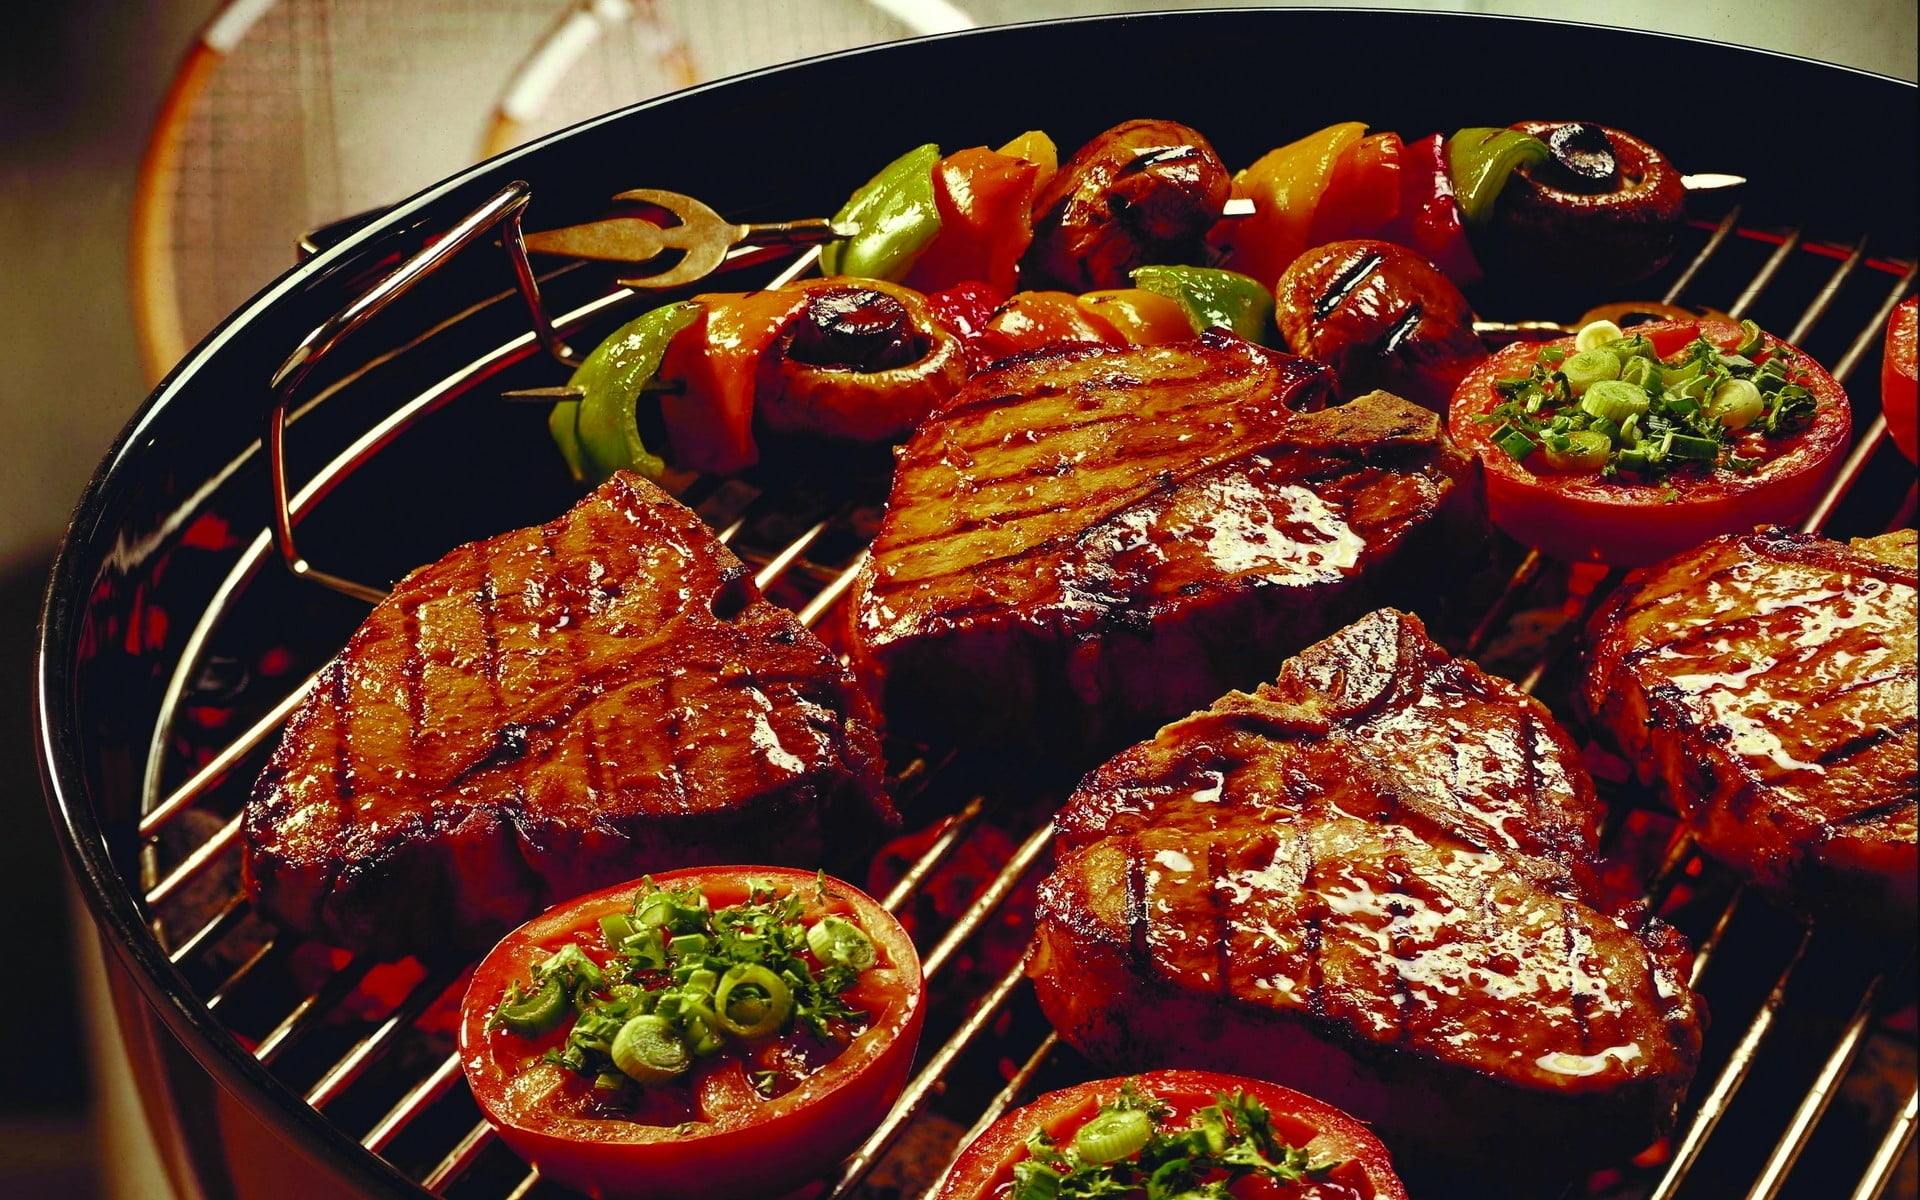 Grilled steak on gray charcoal grill HD wallpaper Wallpaper Flare 1920x1200